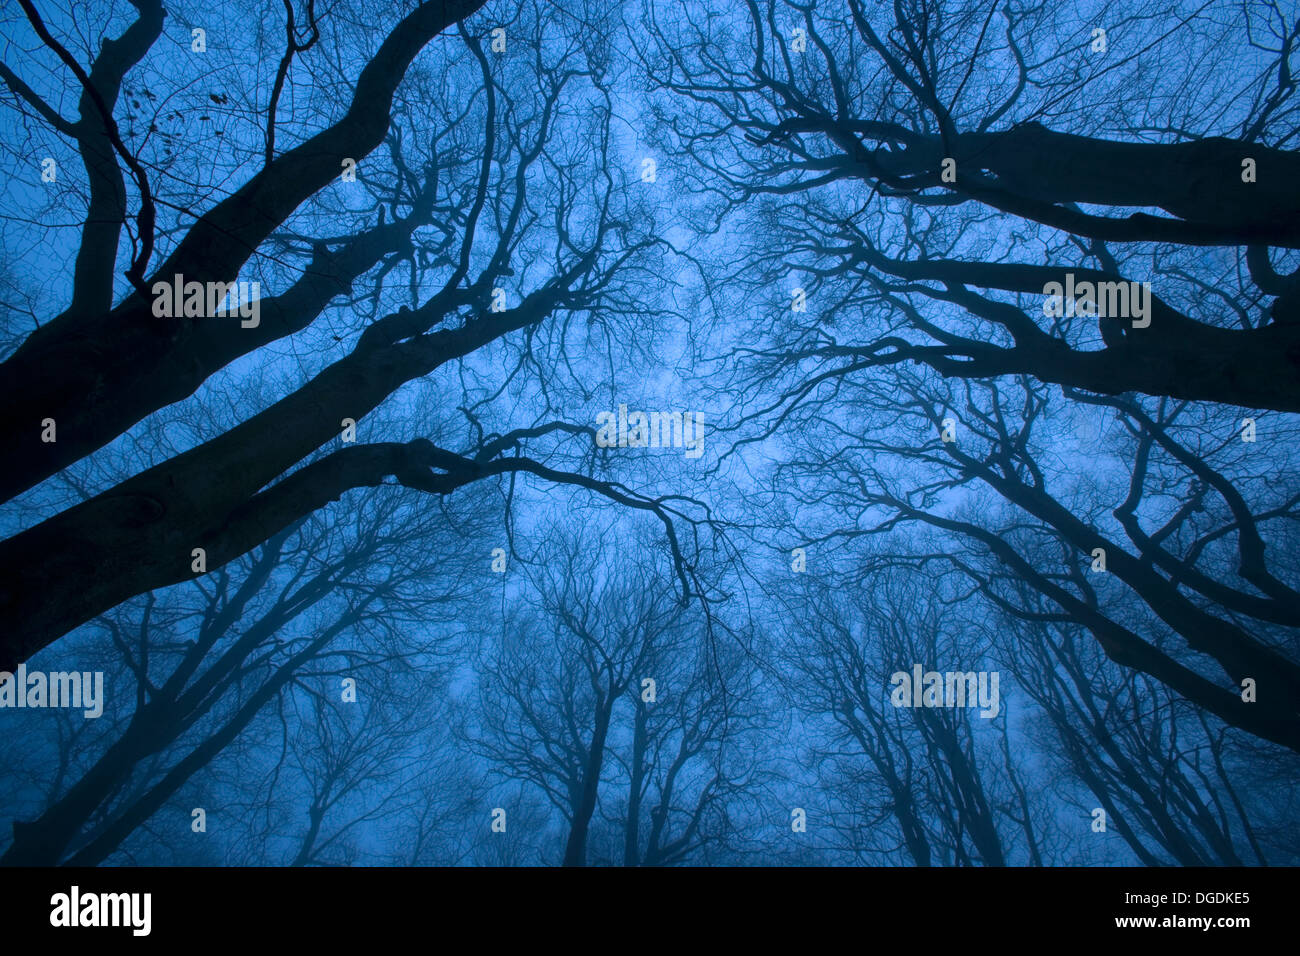 Tree canopy in winter, Felbrigg Woods, Norfolk, UK Stock Photo